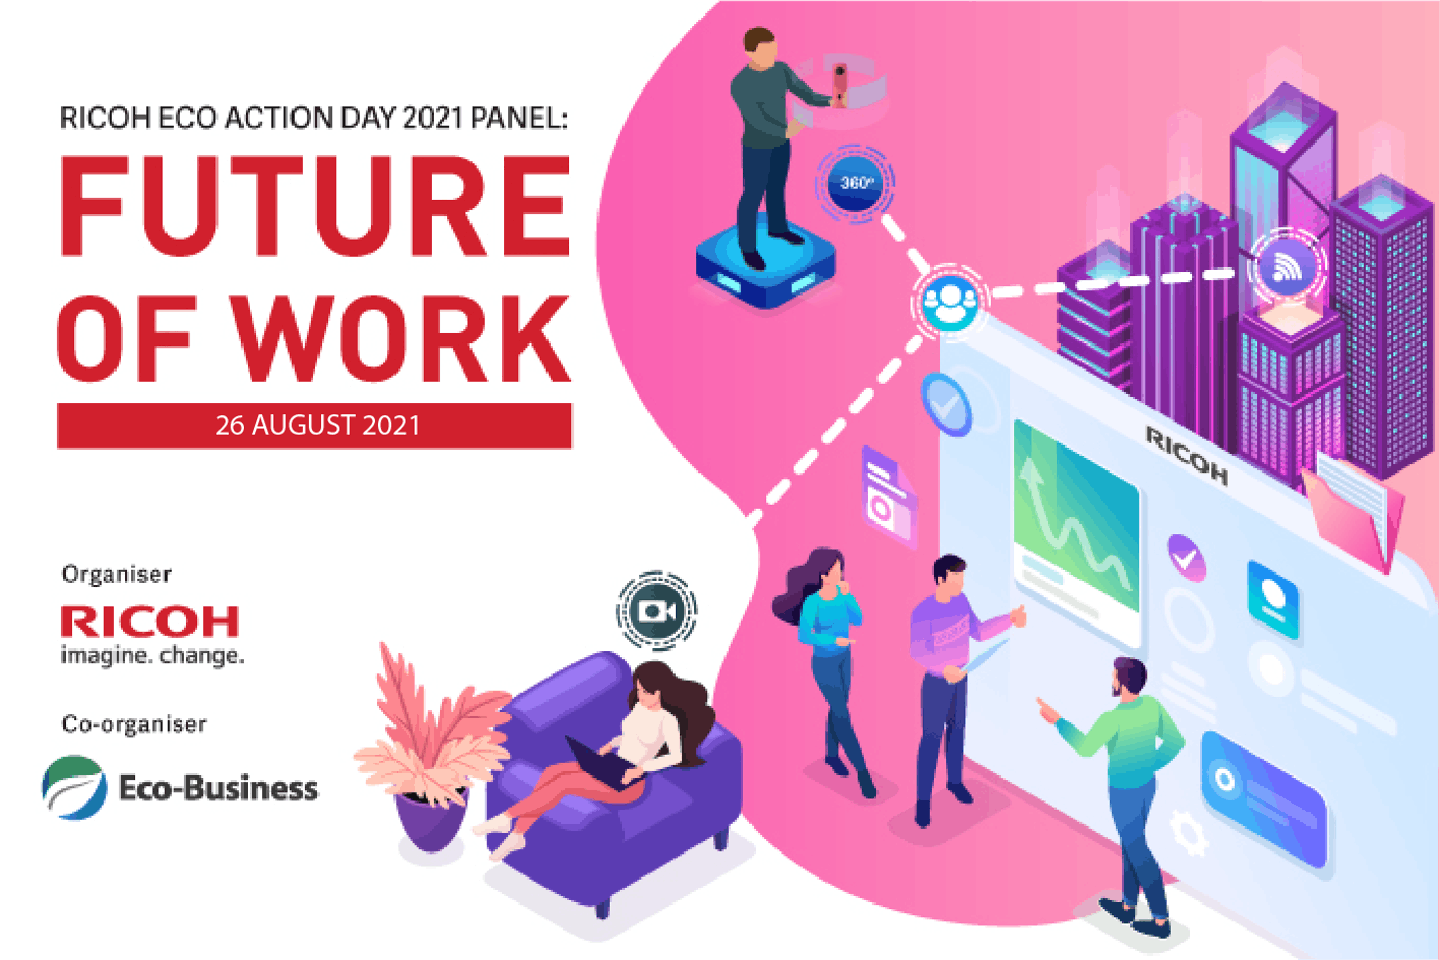 Eco Action Day 2021: The Future of Work